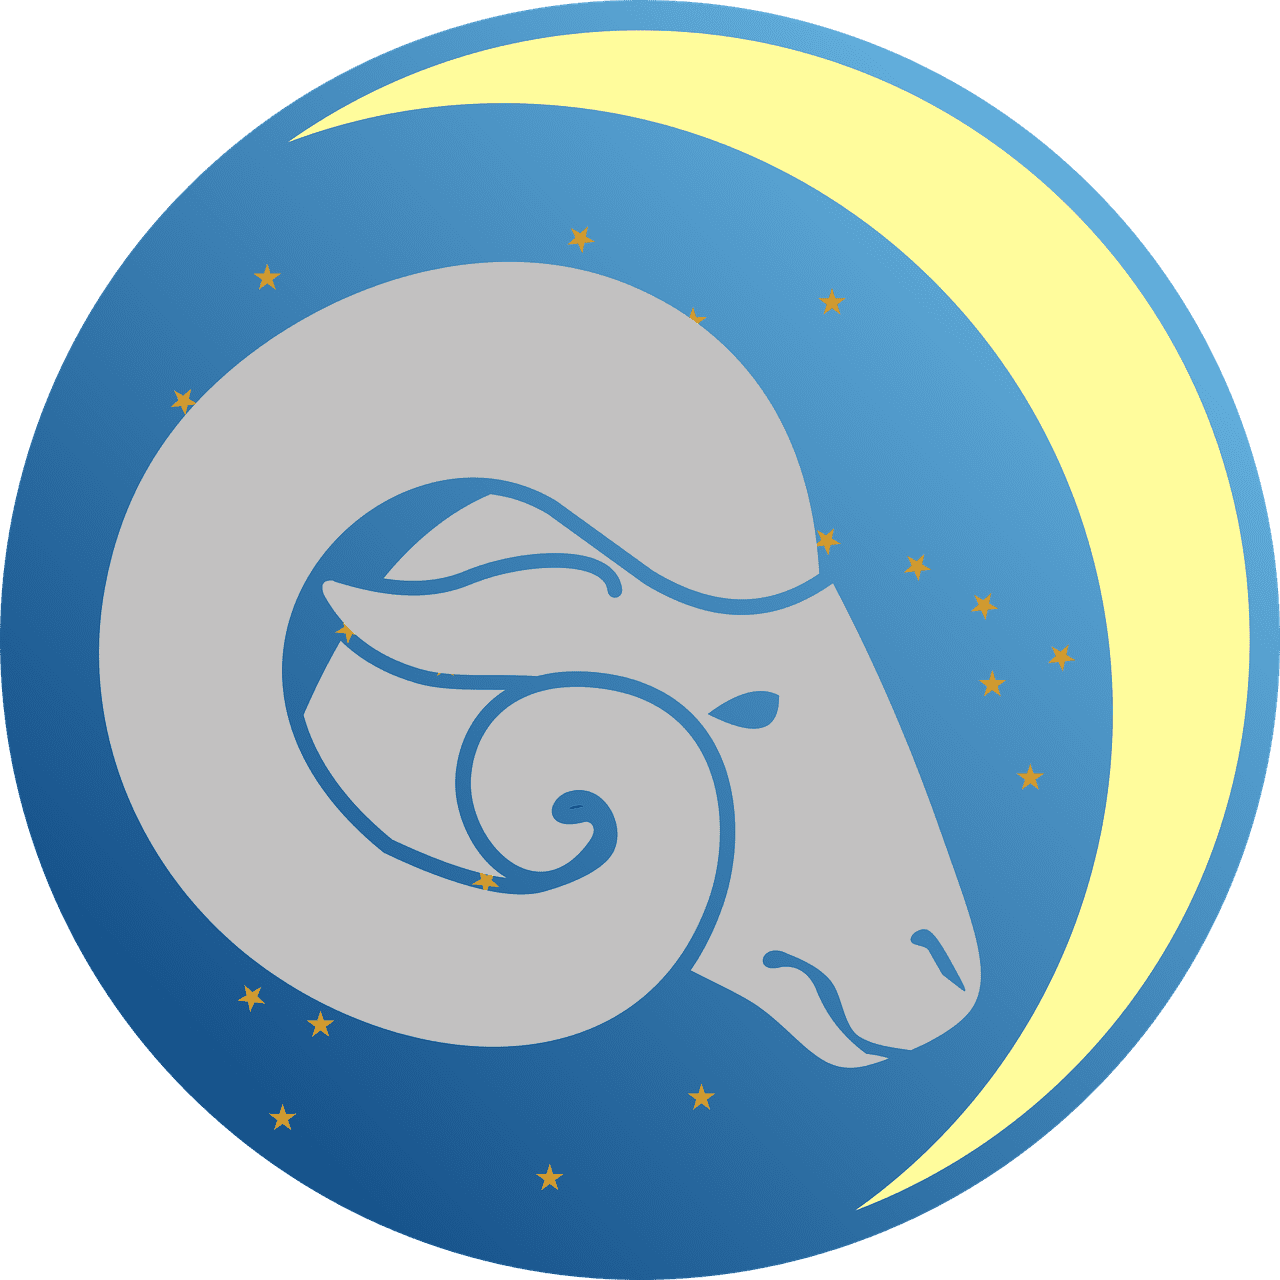 A depiction of the Aries star sign   Photo: Pixabay/13smok